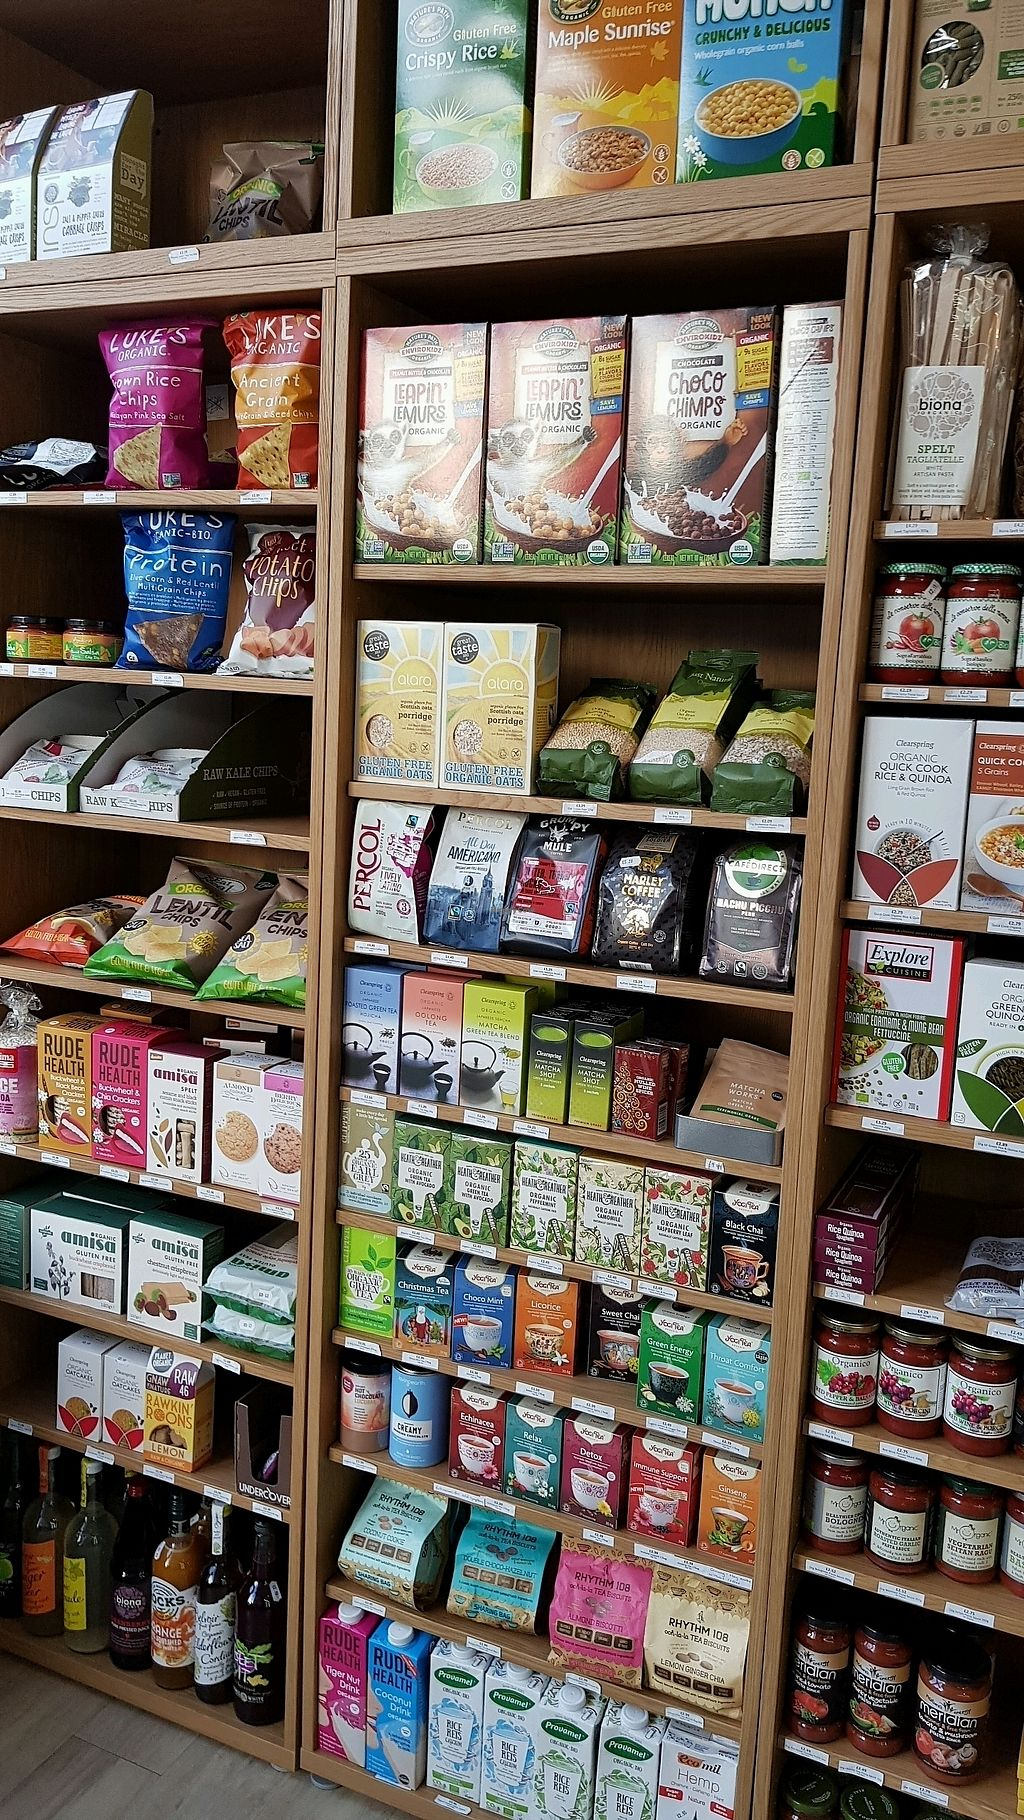 """Photo of Avocado Leaf  by <a href=""""/members/profile/jollypig"""">jollypig</a> <br/>Shelves of goodness <br/> March 19, 2018  - <a href='/contact/abuse/image/97244/373044'>Report</a>"""